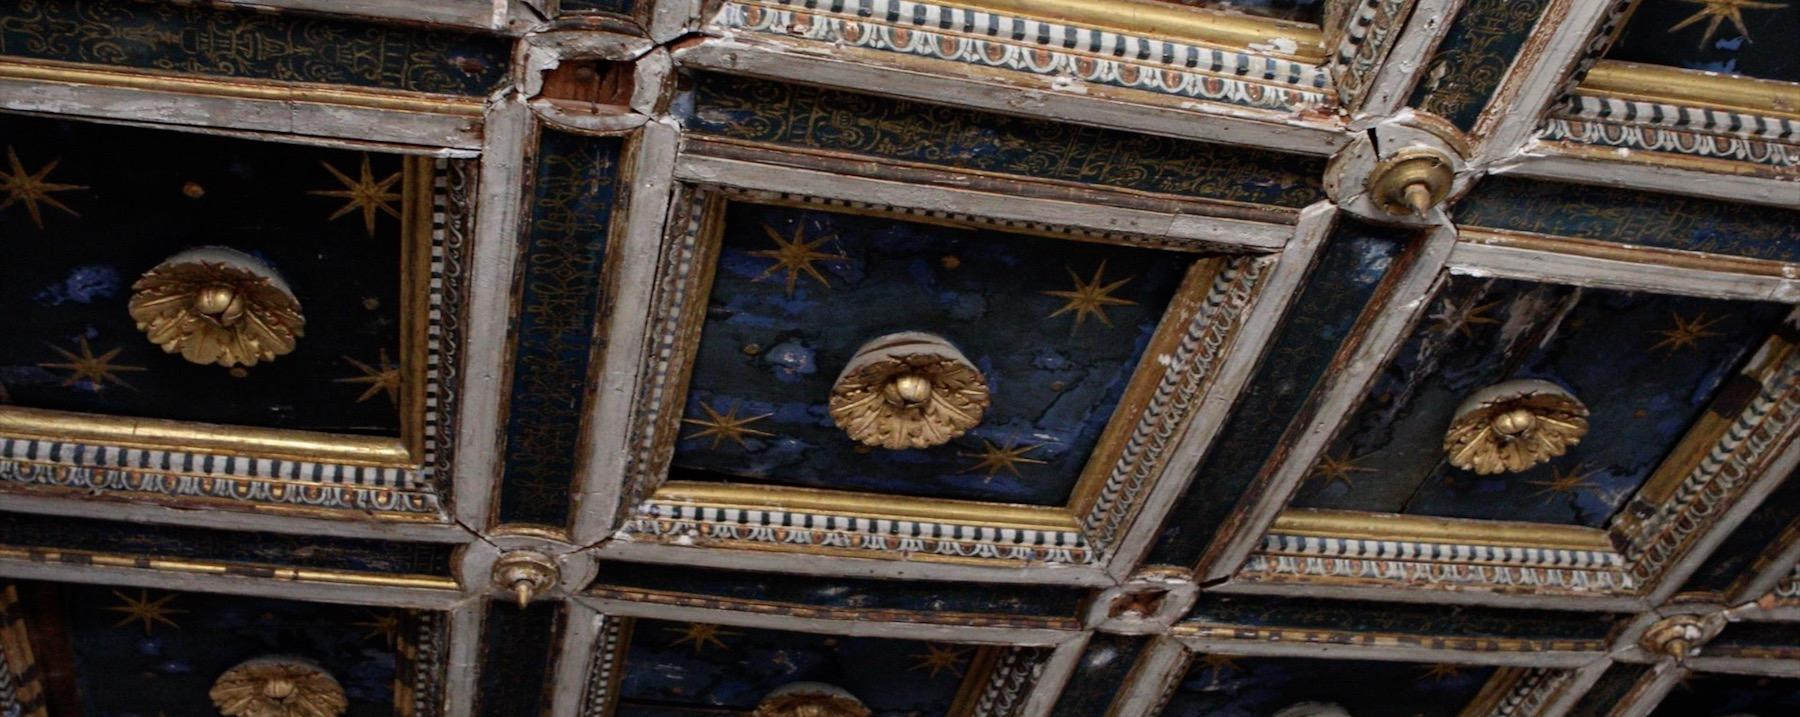 San Filippino ceiling 2